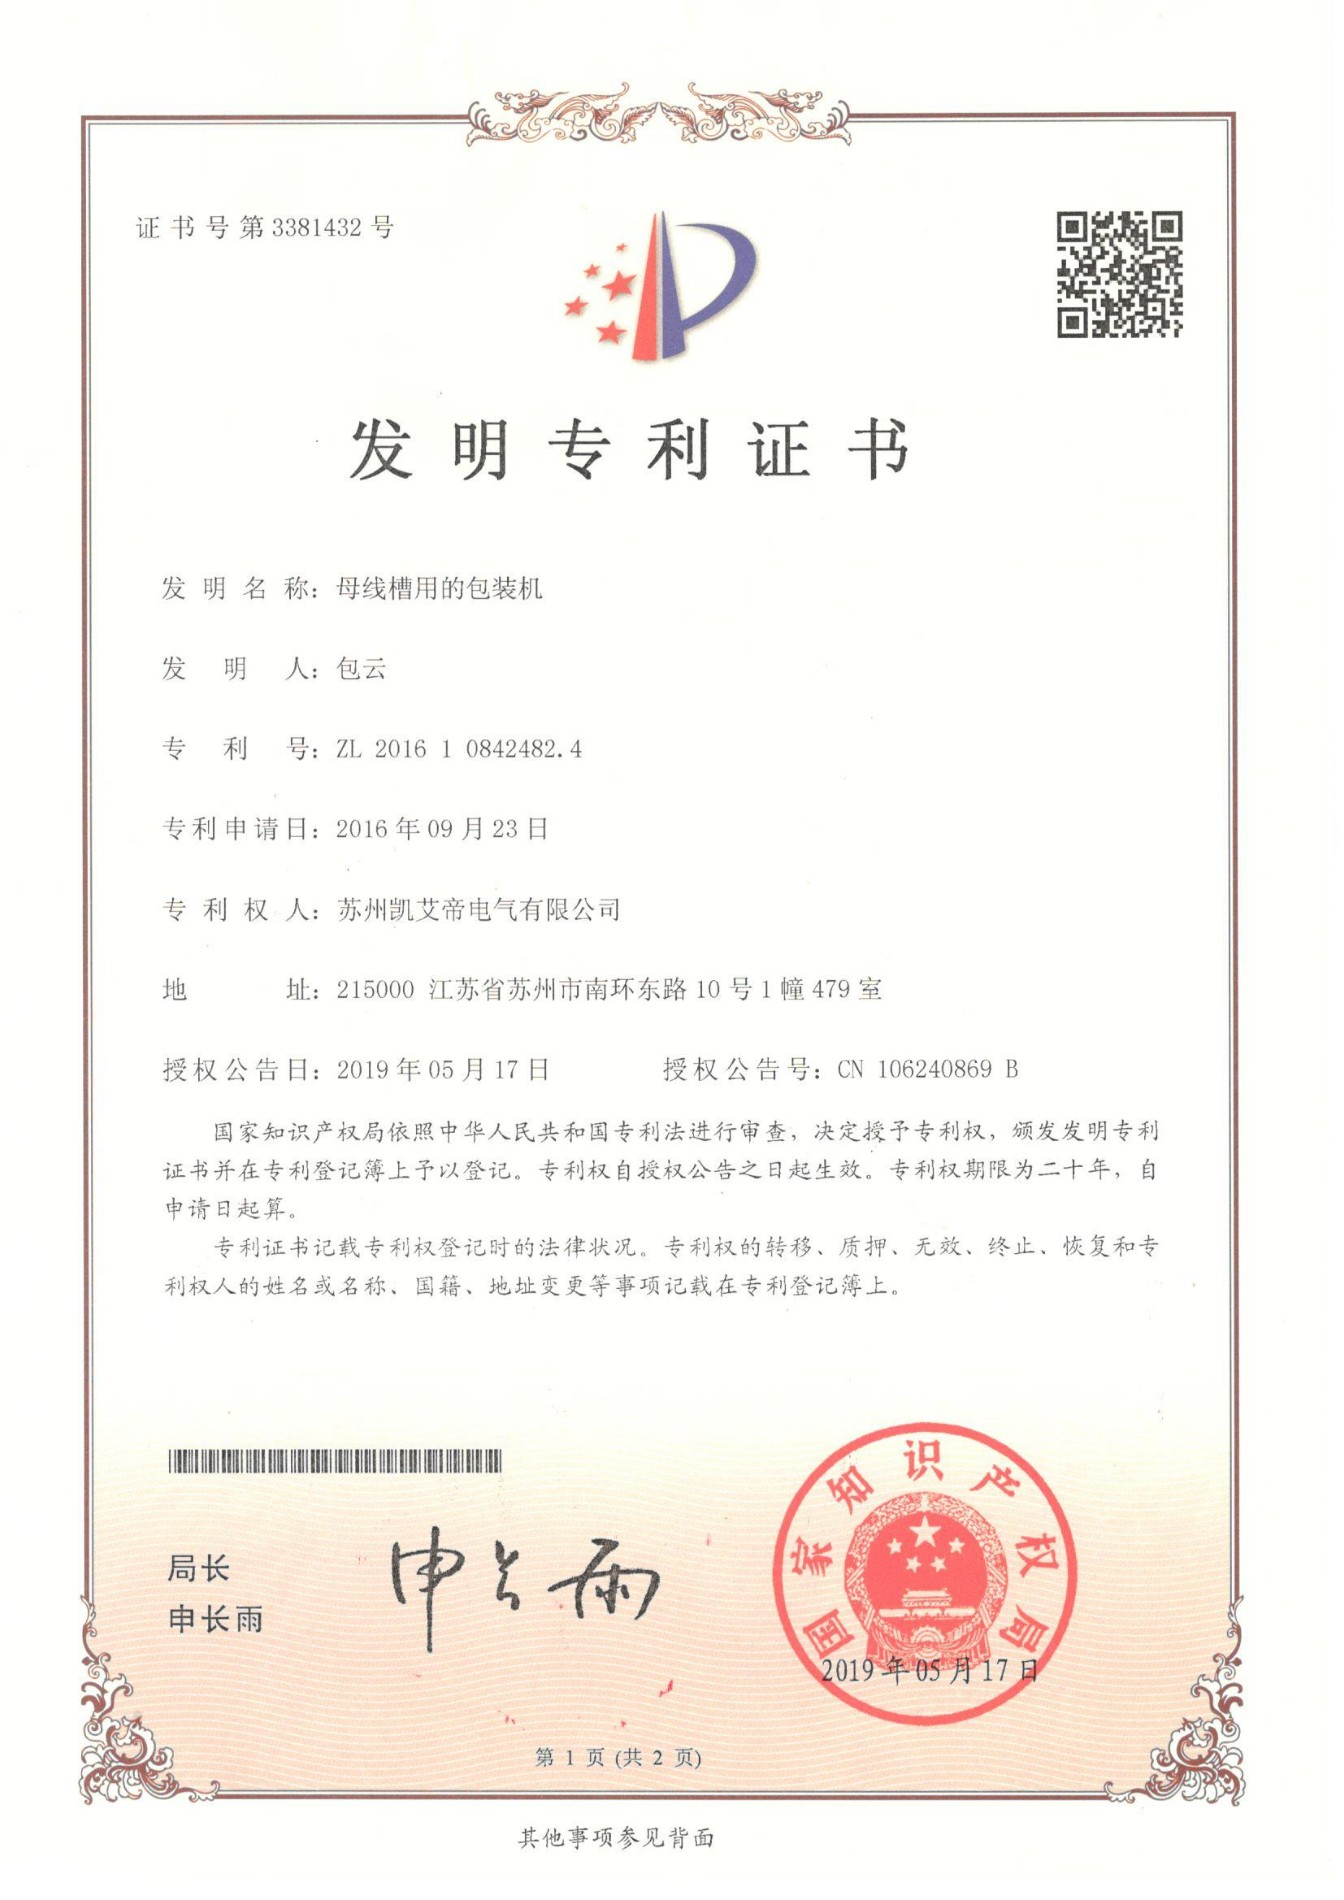 Patent on busbar packing machine